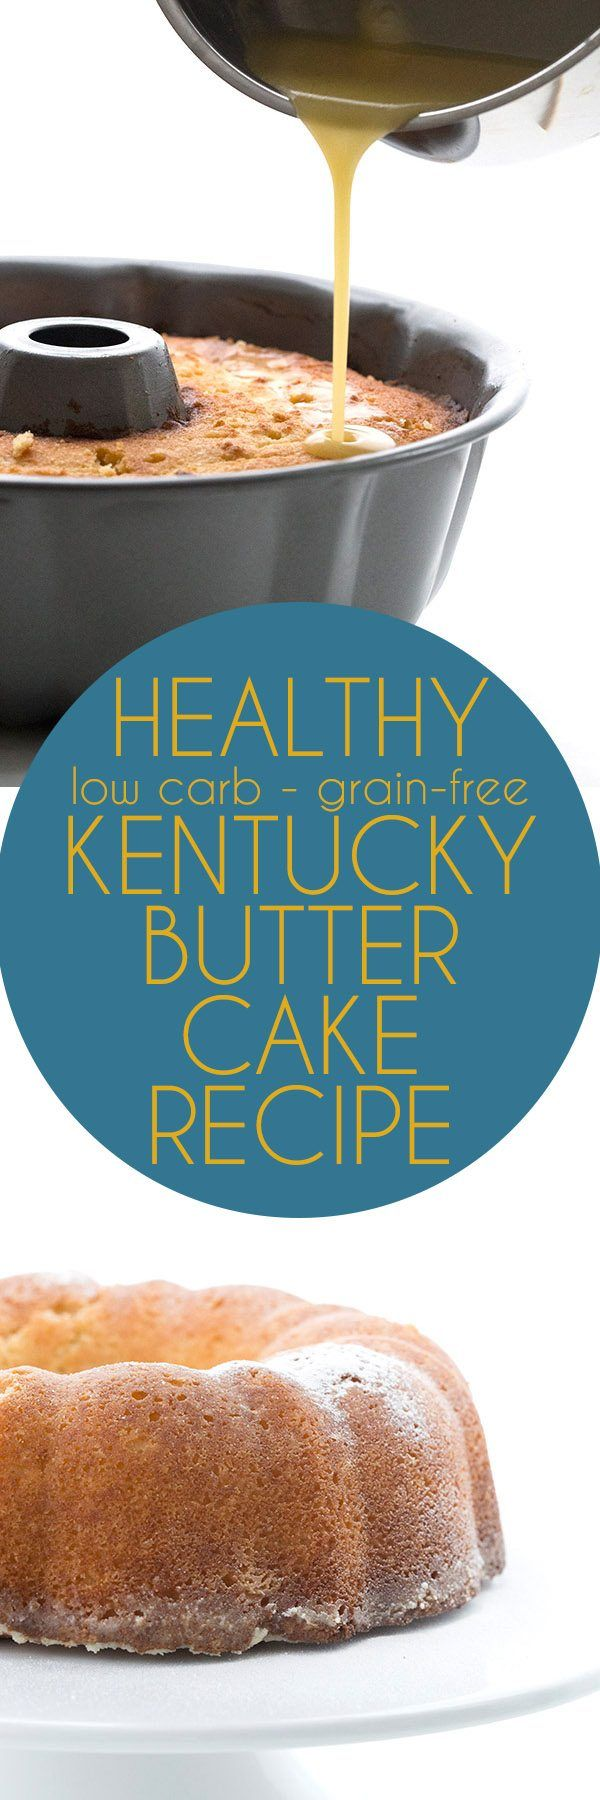 960 best The Low Carb Test Kitchen images on Pinterest | Low carb ...